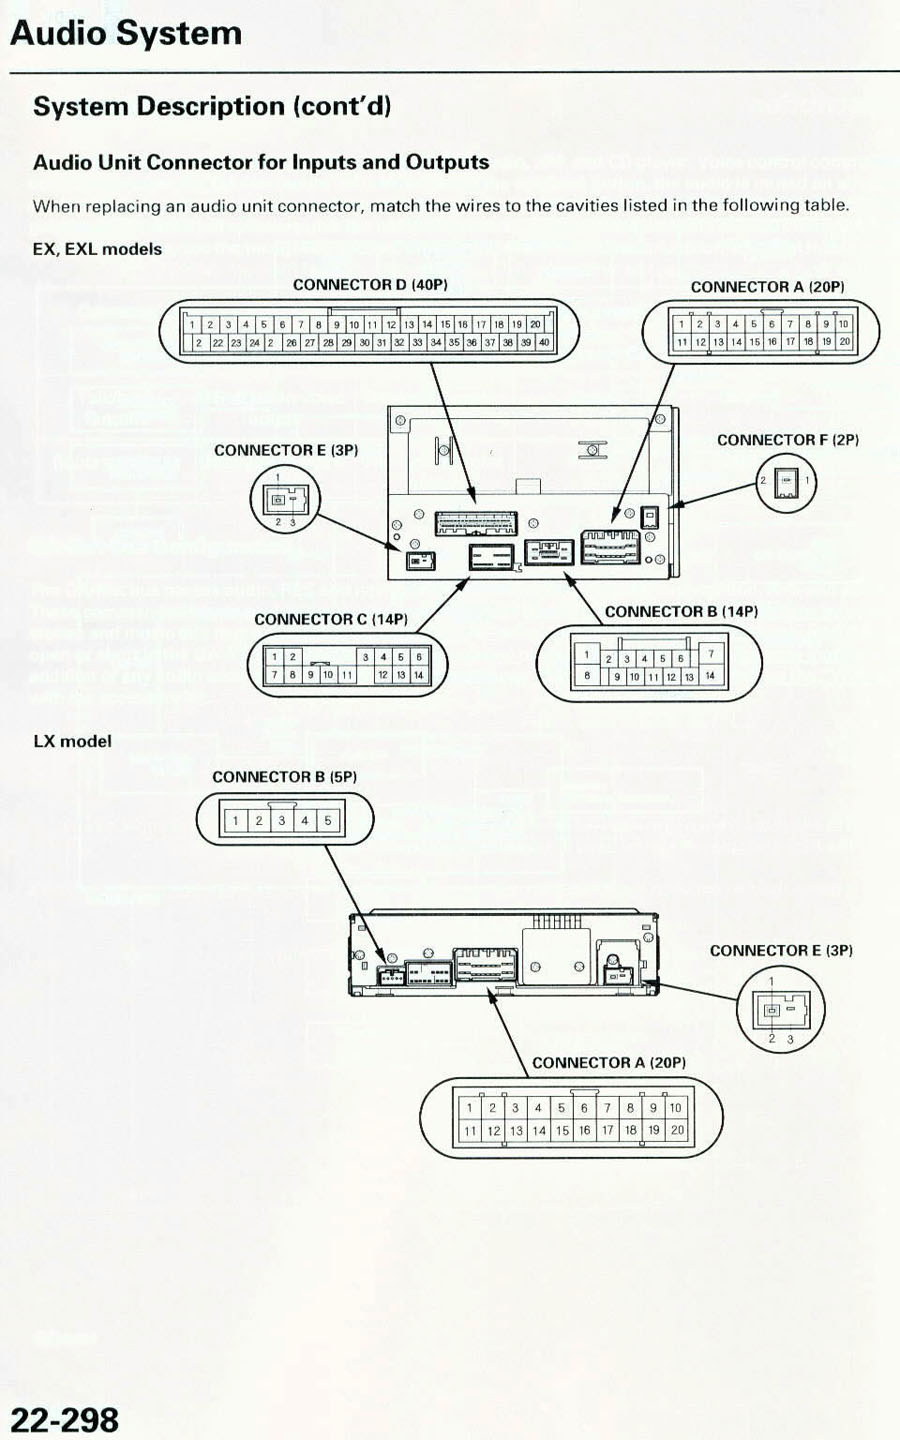 Factory Subwoofer Amp Wiring Diagram Schematics Diagrams 2010 Ford Edge Re And Aftermarket Hu Honda Pilot Rh Piloteers Org Car Stereo Sub